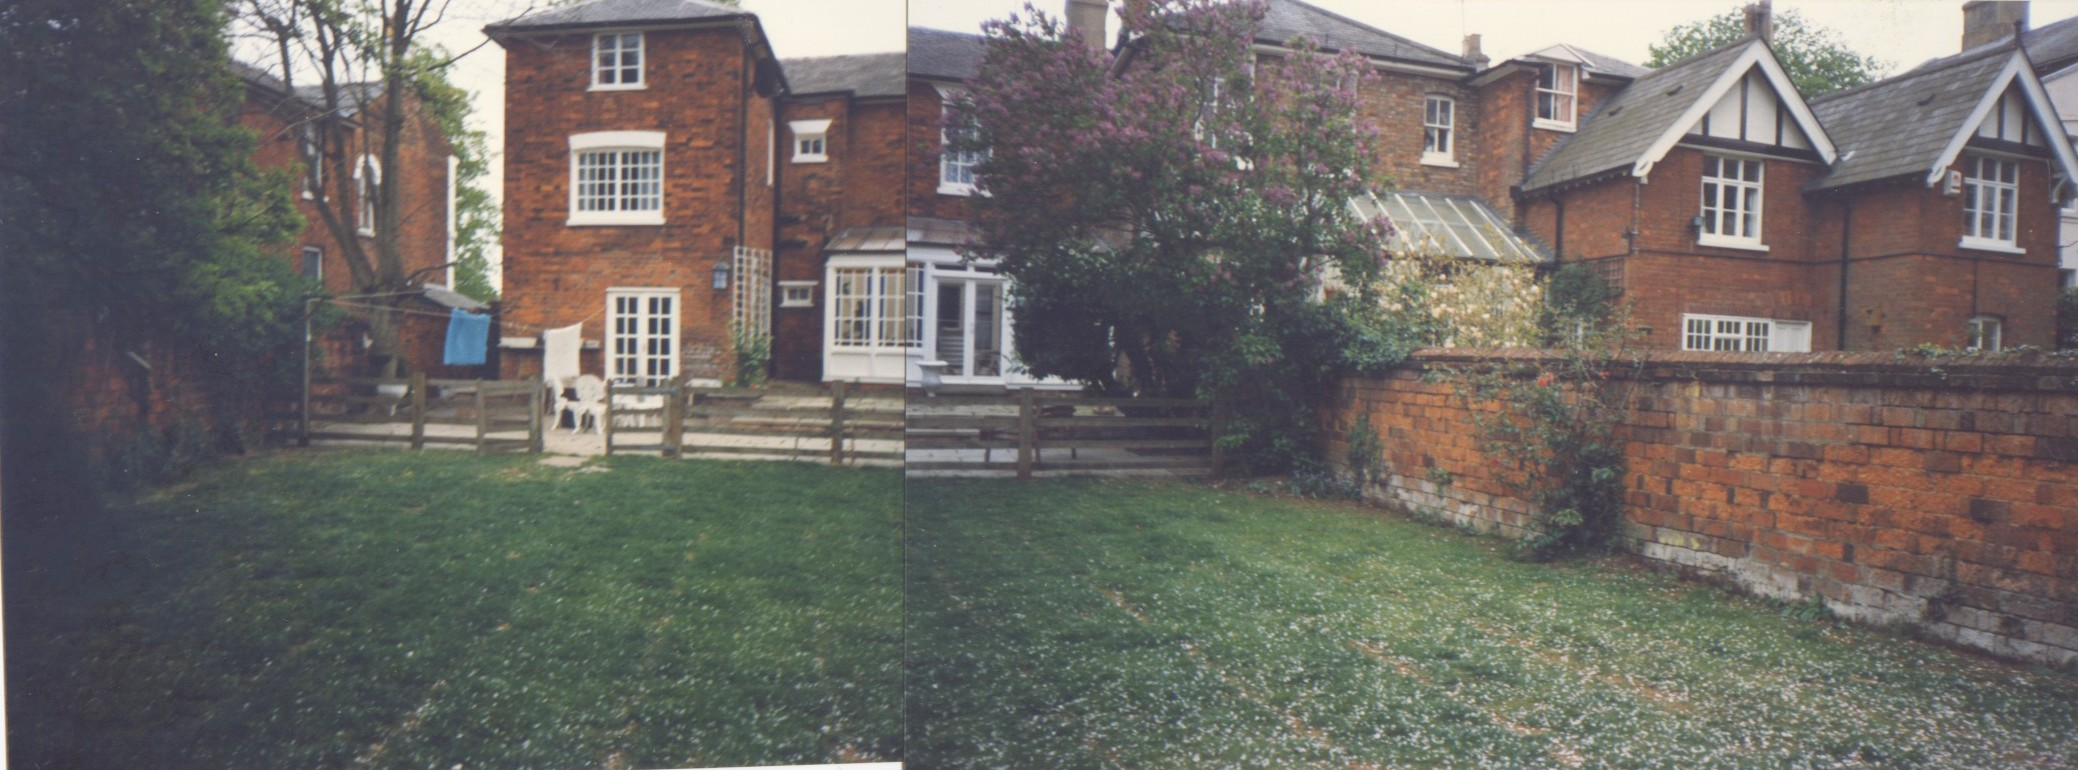 The 'before design' garden view back toward house